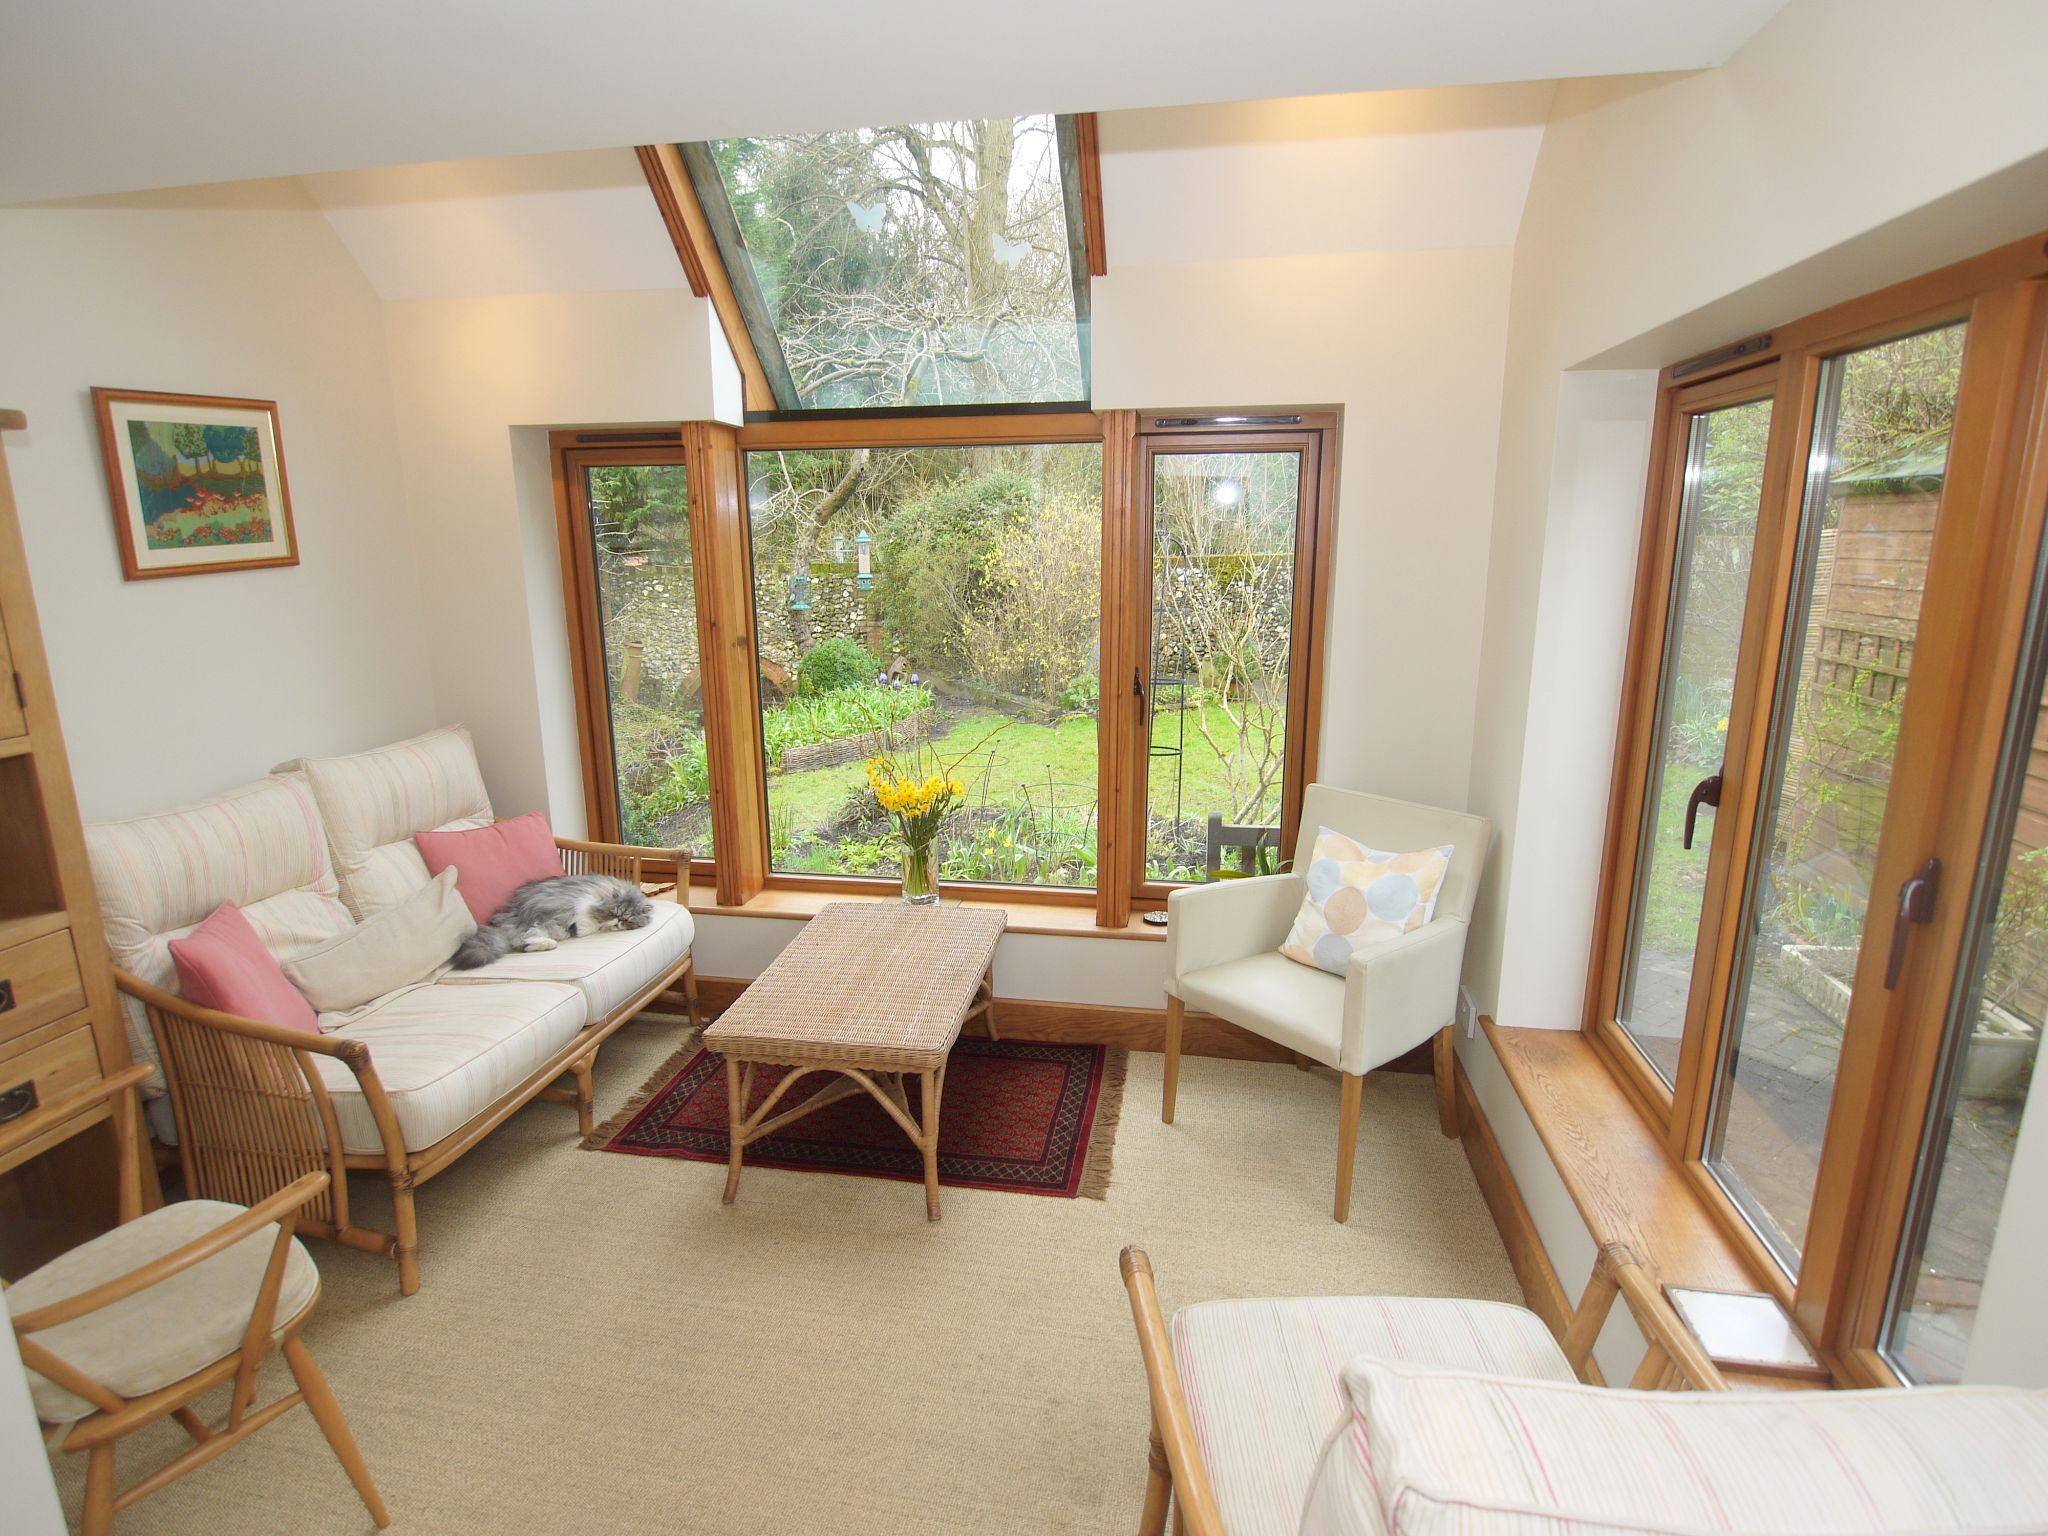 2 bedroom detached house For Sale in Sevenoaks - Photograph 2